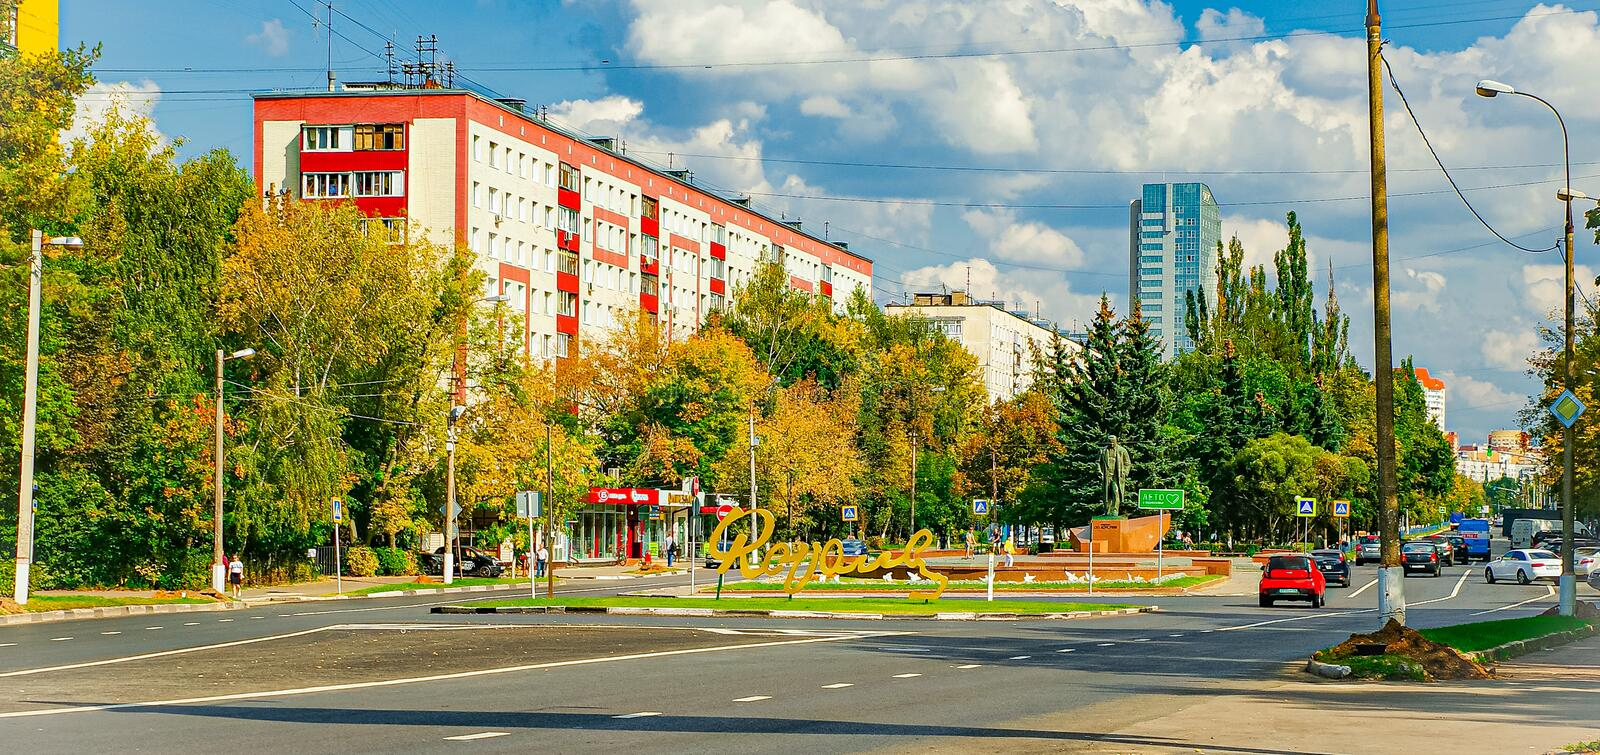 Korolev, Cosmonauts Prospect. Practical cosmonautics of the planet began in the city of Korolev, because of this, many streets, avenues and shopping centers of stock photography